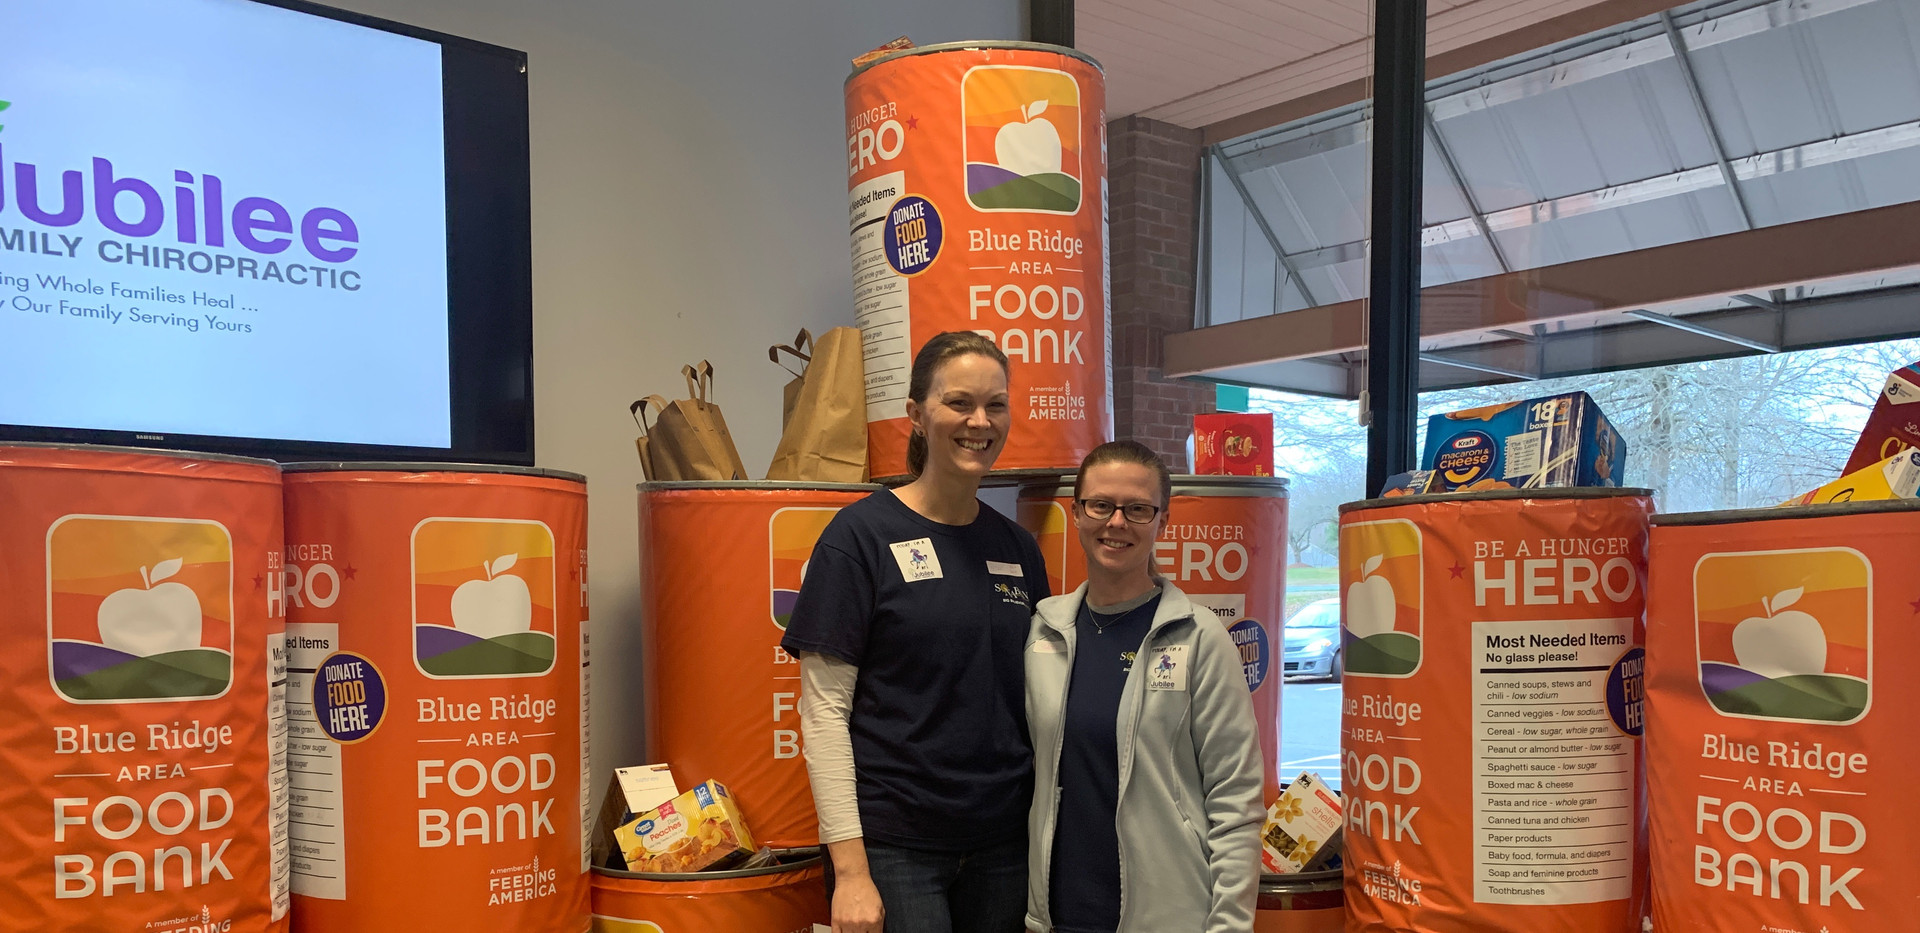 Jubilee Family Chiropractic 2020 Blue Ridge Food Drive. 024